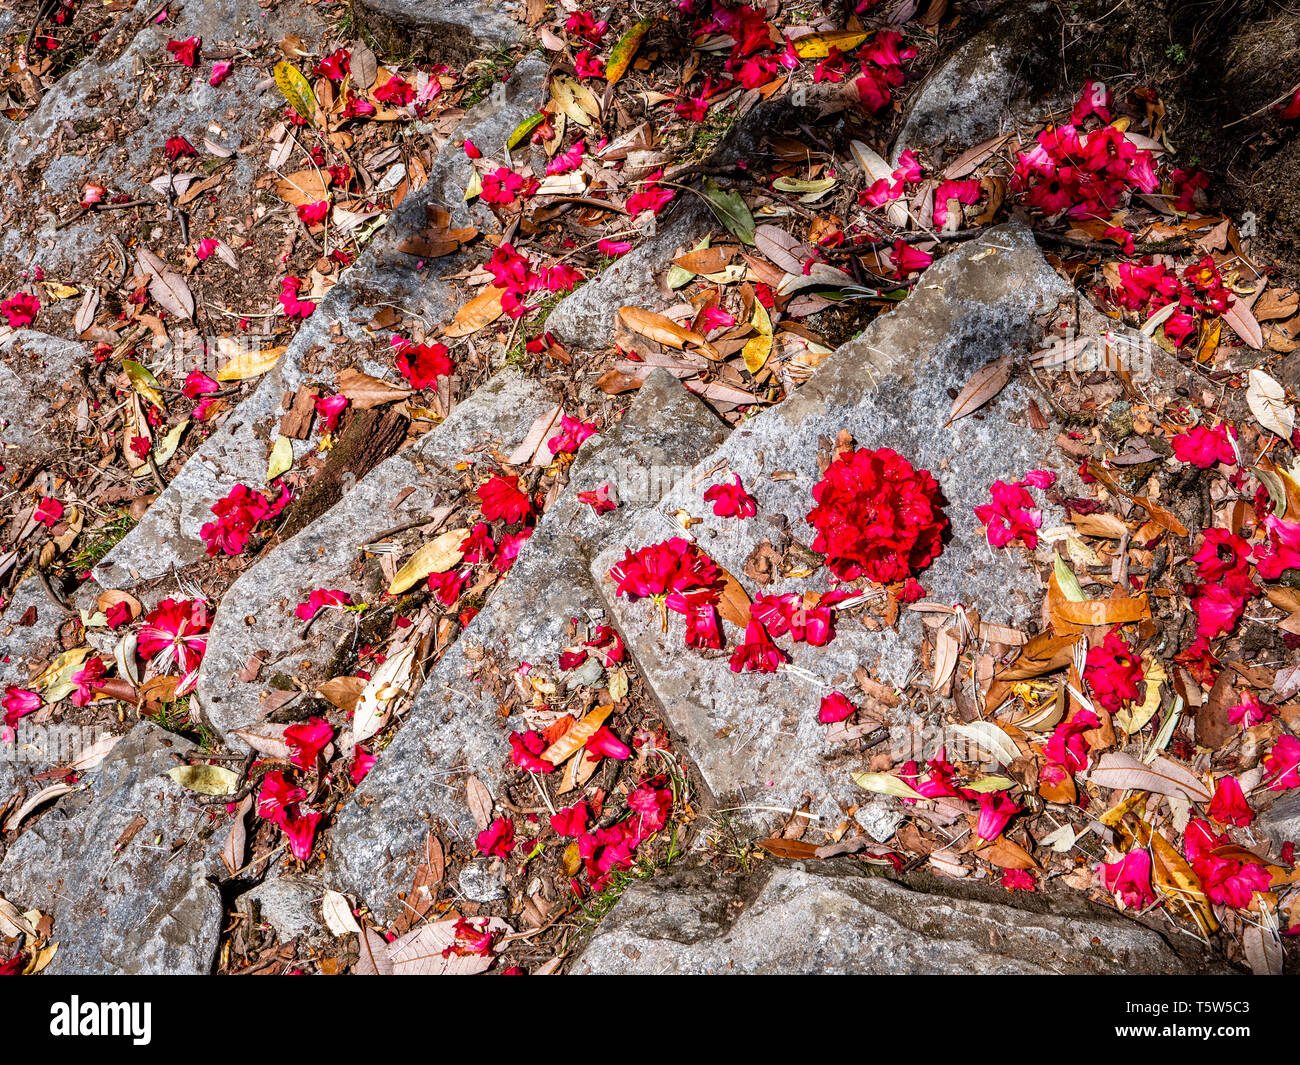 Silvery stepped footpath strewn with colourful scarlet petals of tree rhododendron R arboreum in the Pindar Valley Uttarakhand Northern India - Stock Image